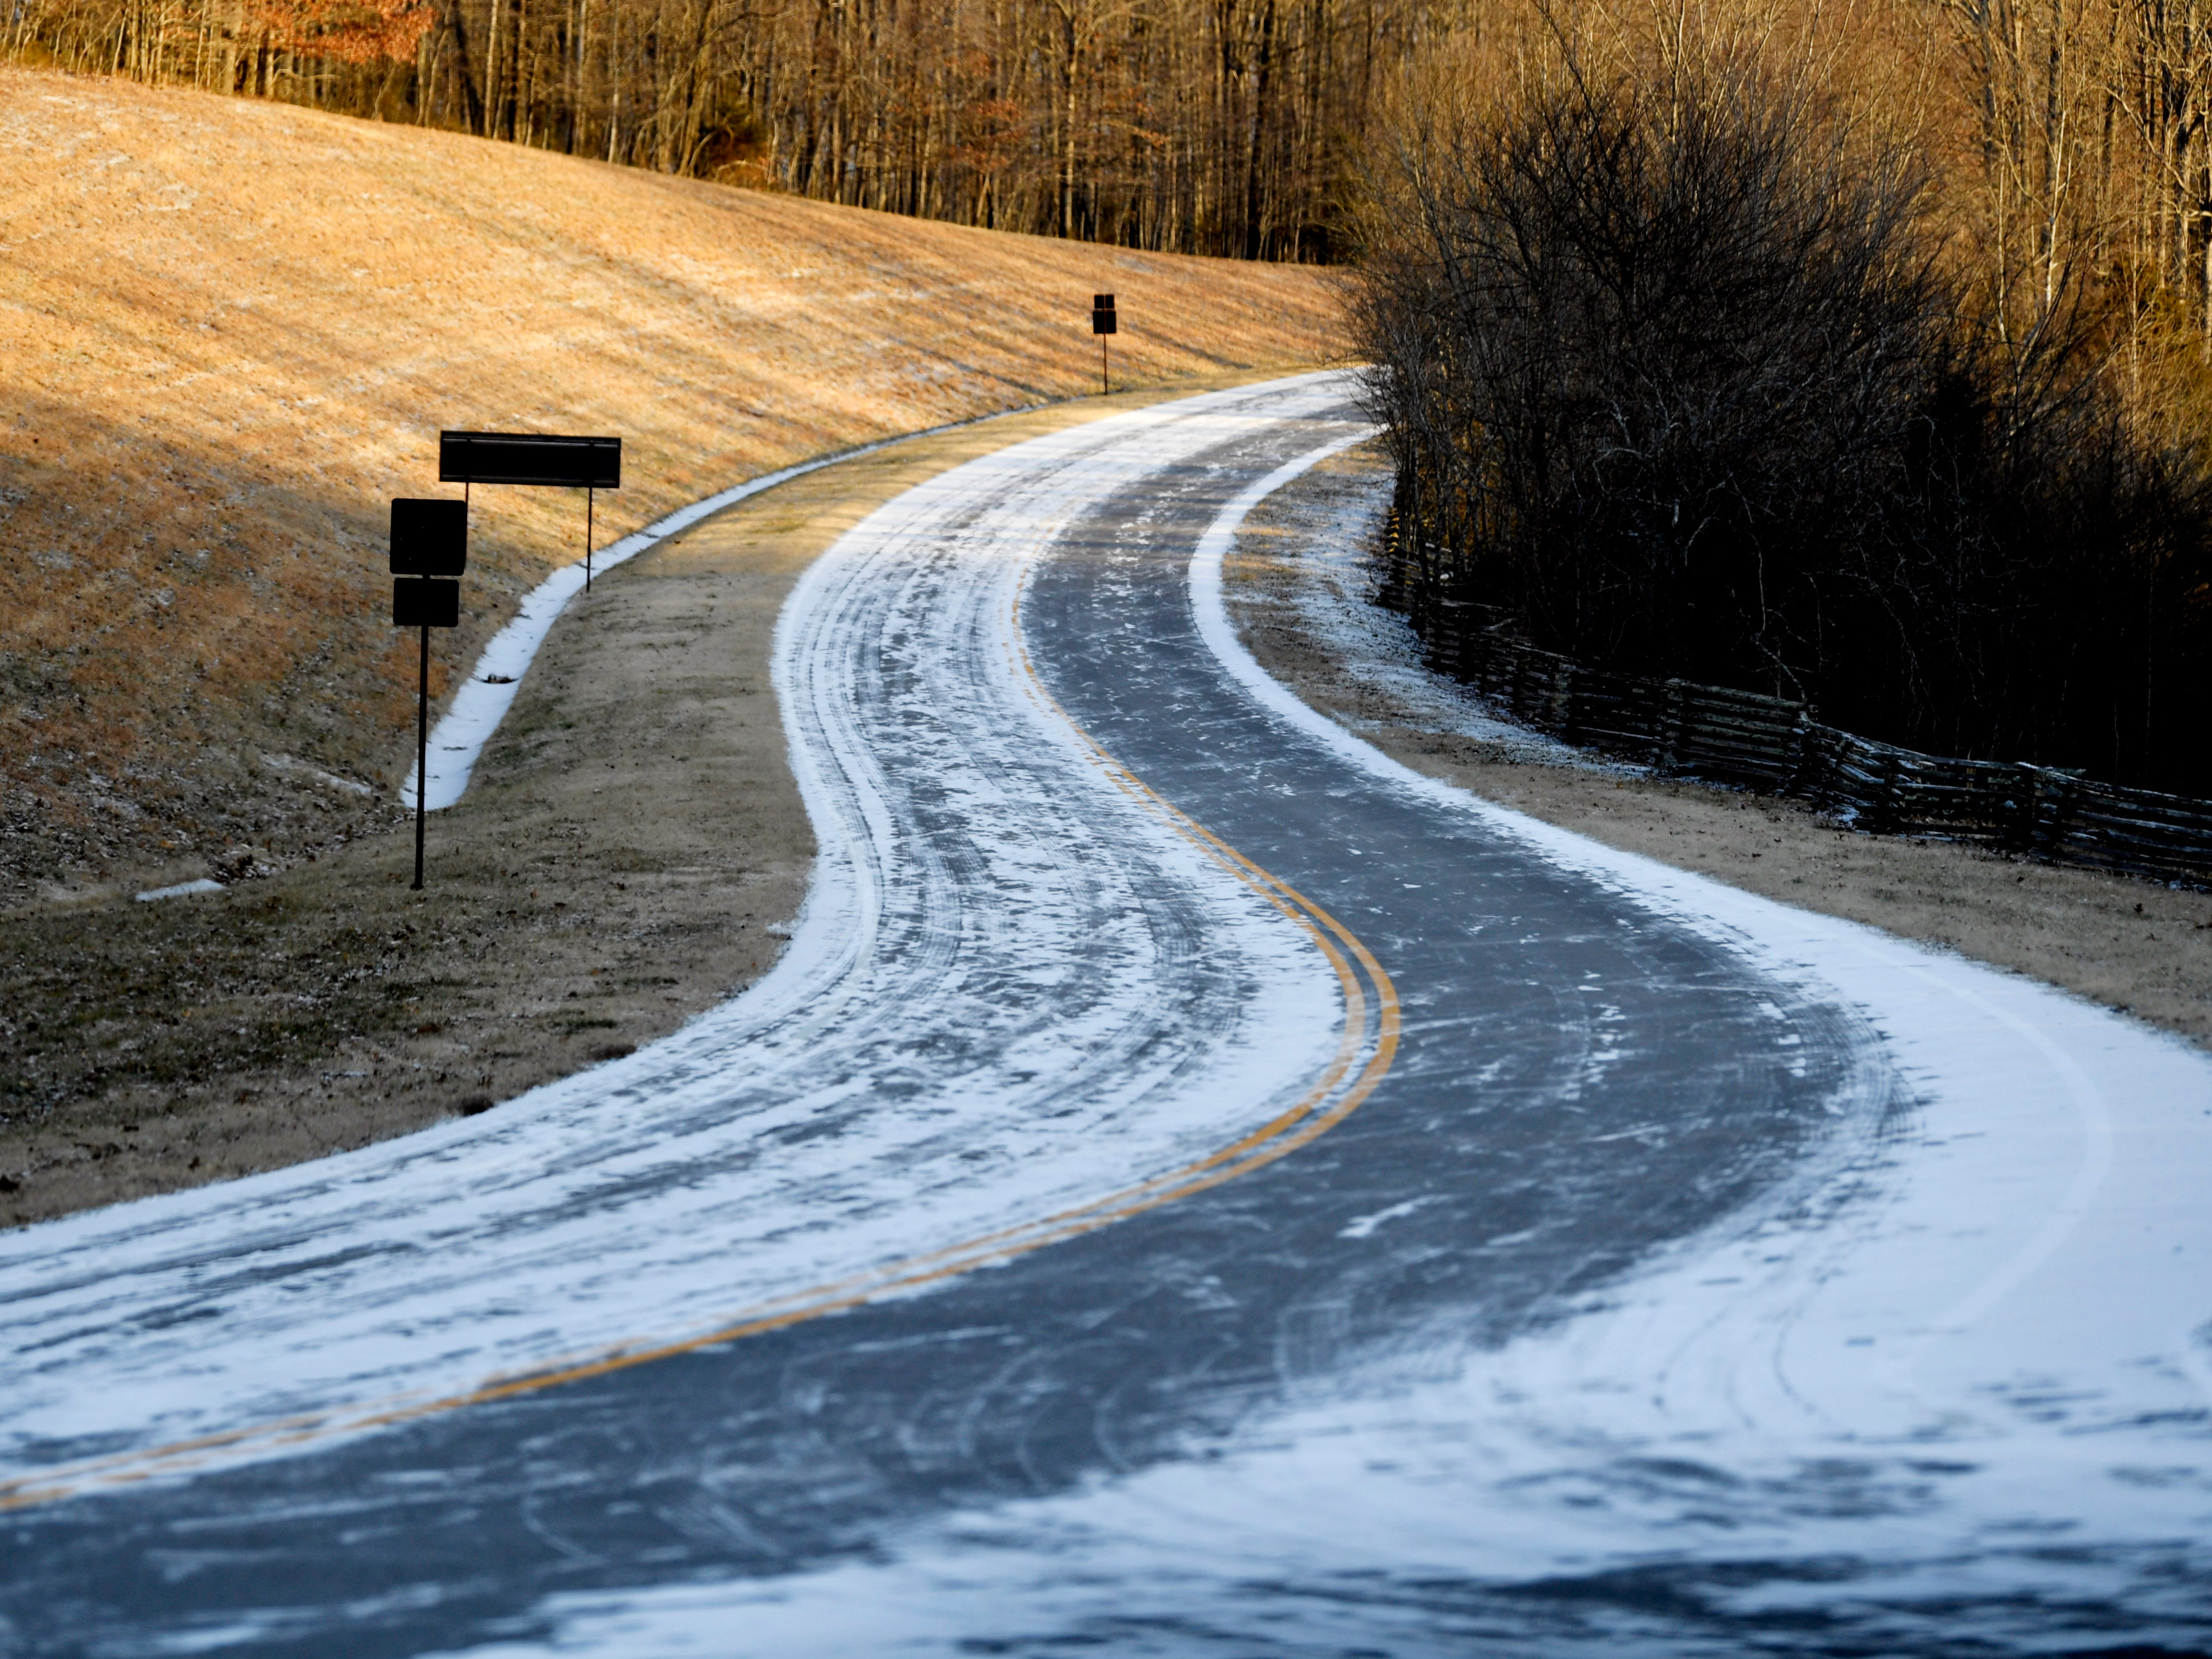 Snows covers the road on the Natchez Trace Parkway after a dusting hit Middle Tennessee Wednesday, Jan. 30, 2018.